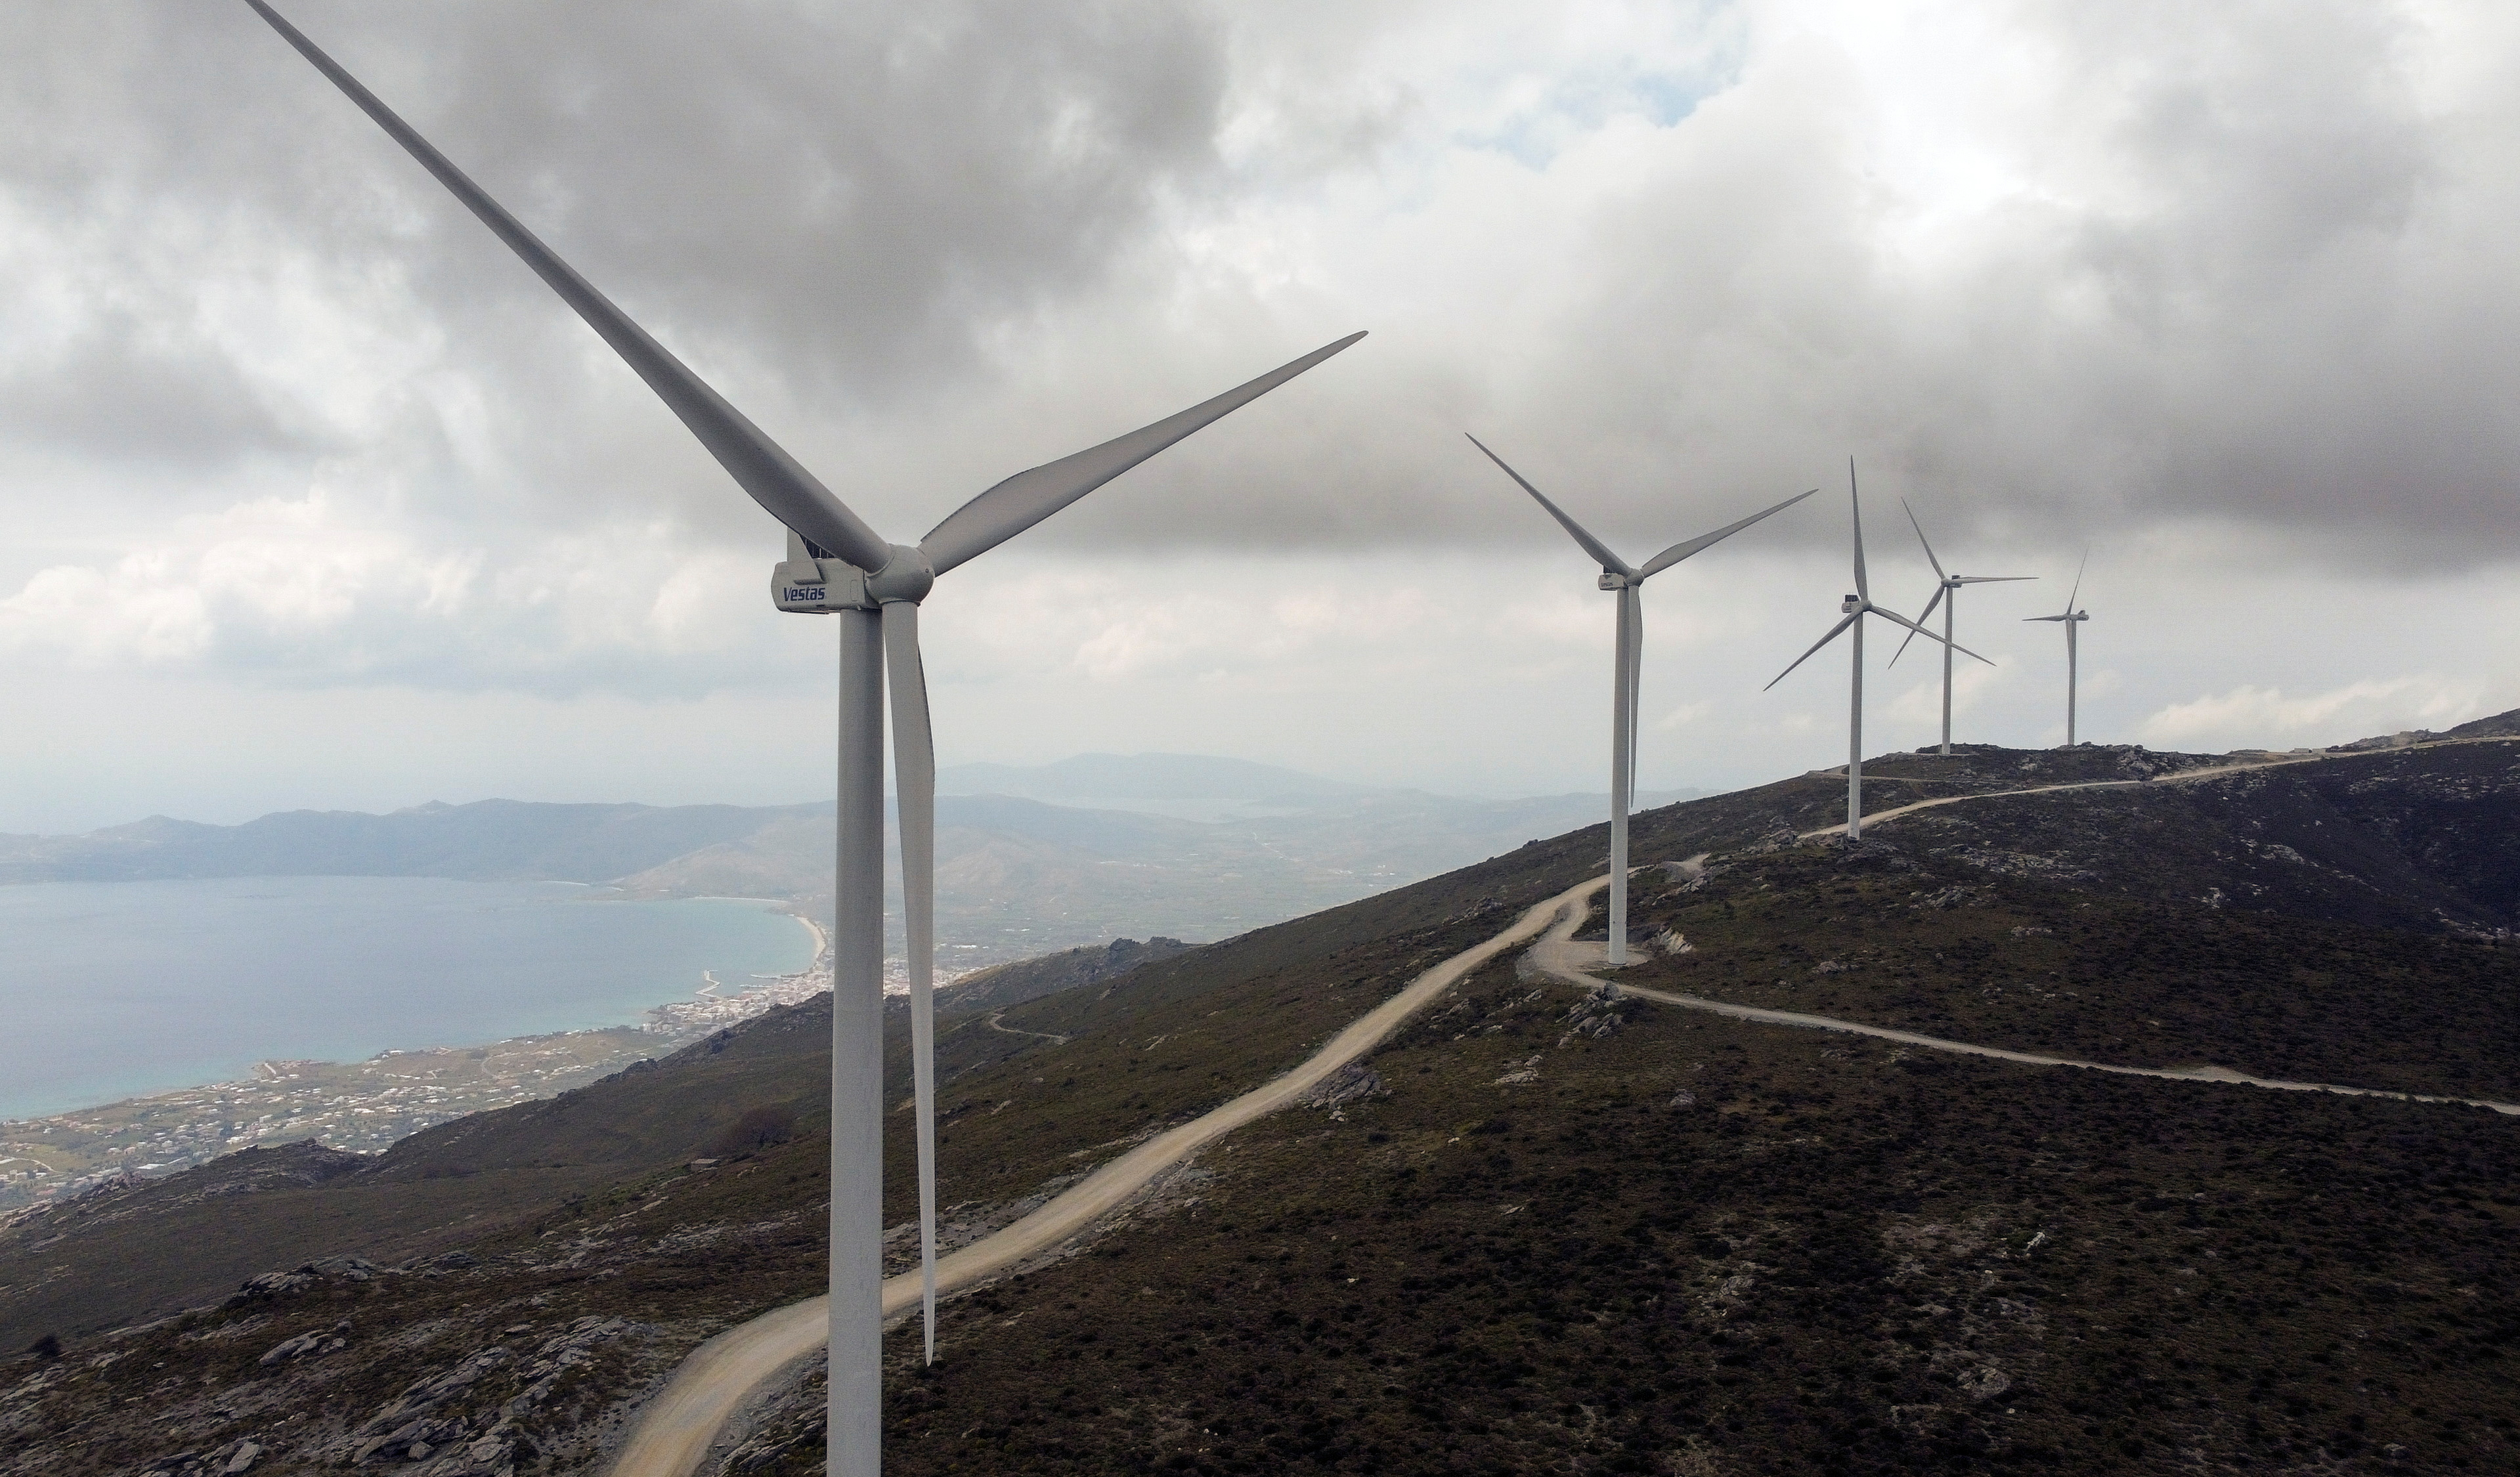 Wind turbines are seen on a mountain as the town of Karystos is seen in the background, on the island of Evia, Greece, April 16, 2021. Picture taken April 16, 2021. Picture taken with a drone. REUTERS/Alkis Konstantinidis